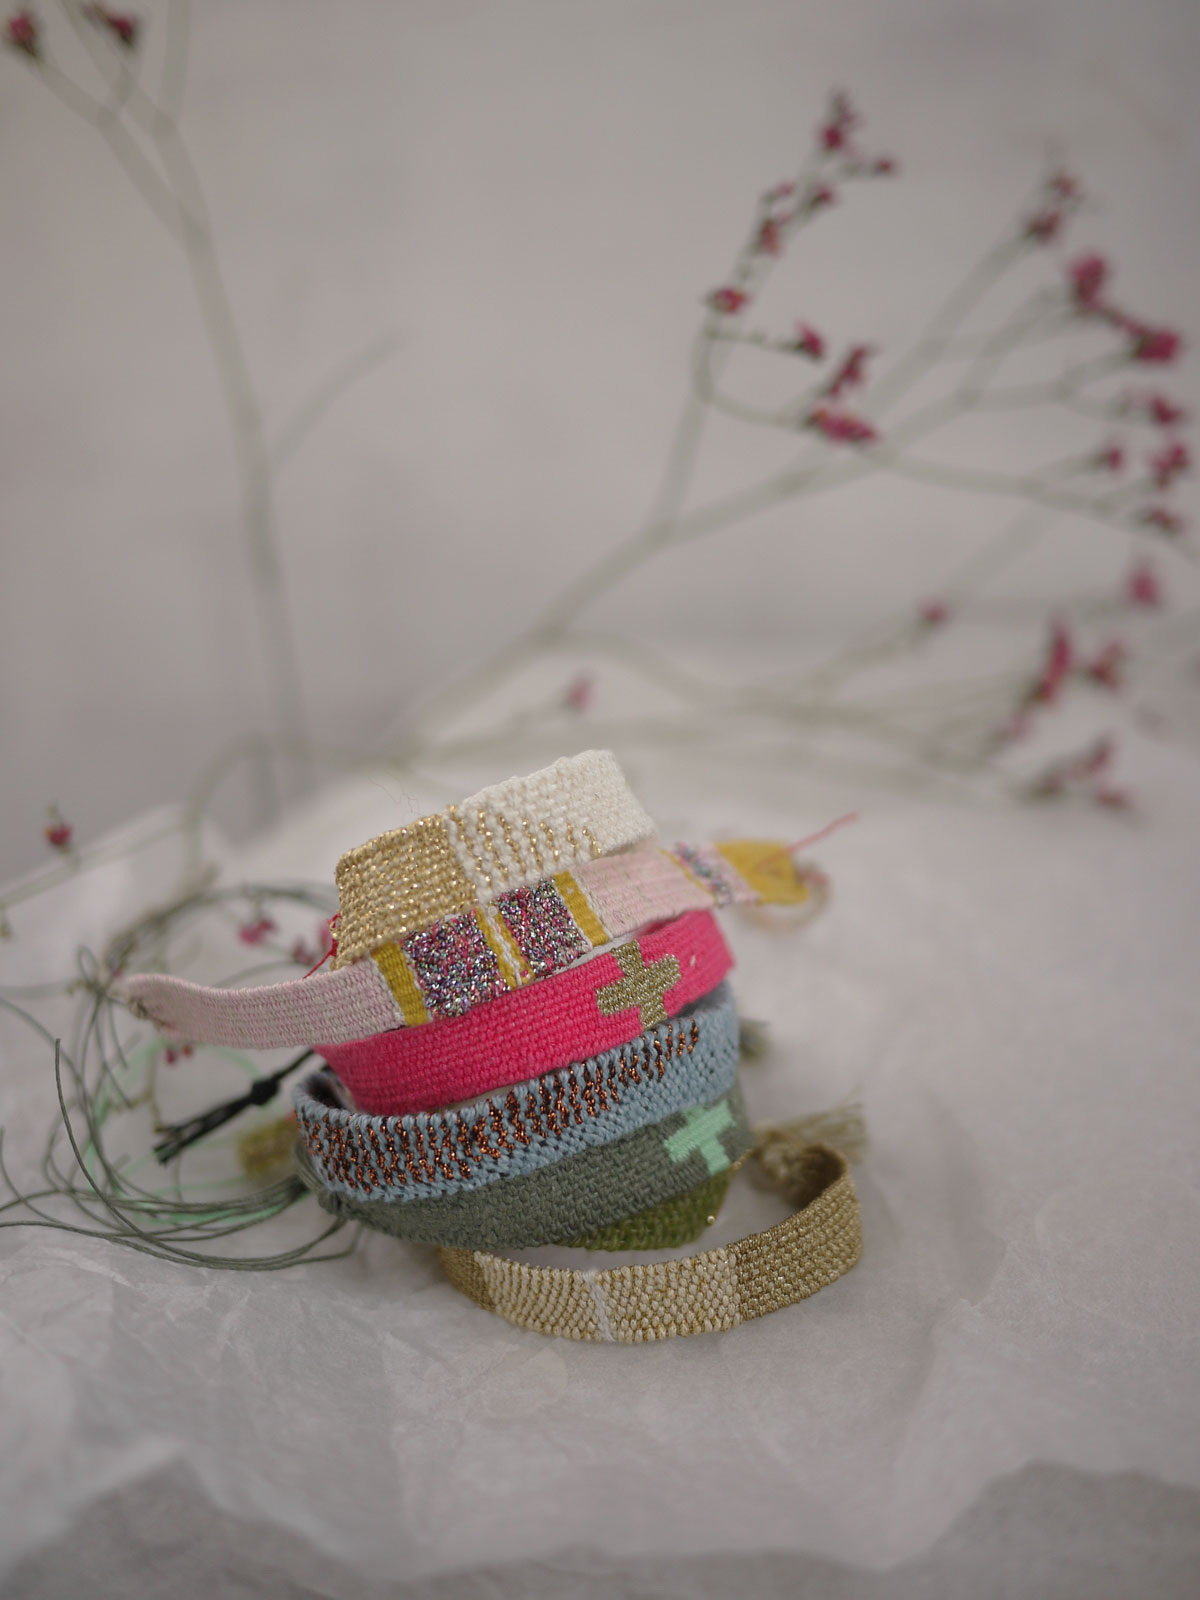 Bracelets LOOM - Design textile by Myriam Balaÿ myriam-balay-light2 D'une saison à l'autre... L'appartement